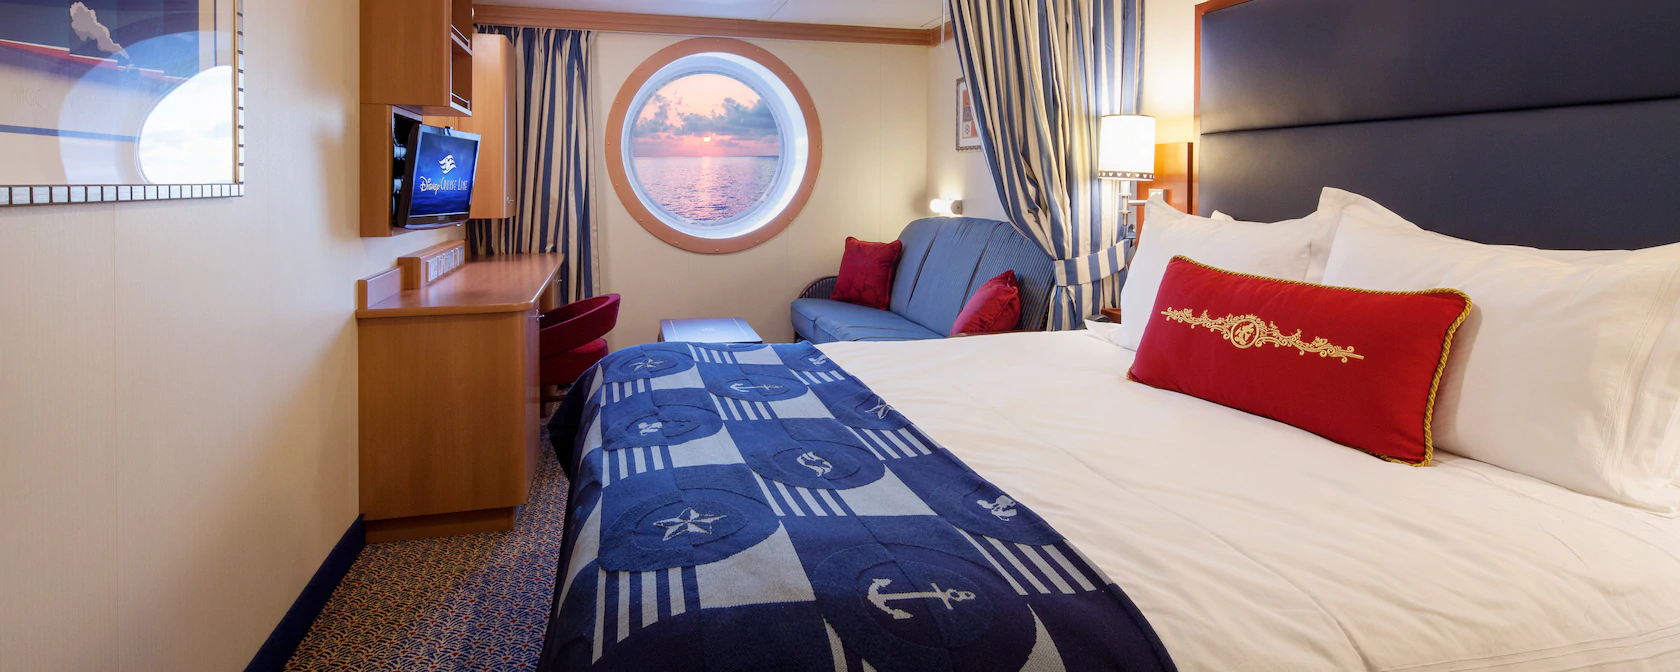 Disney Cruise Room Types And Categories Explained Featured Image